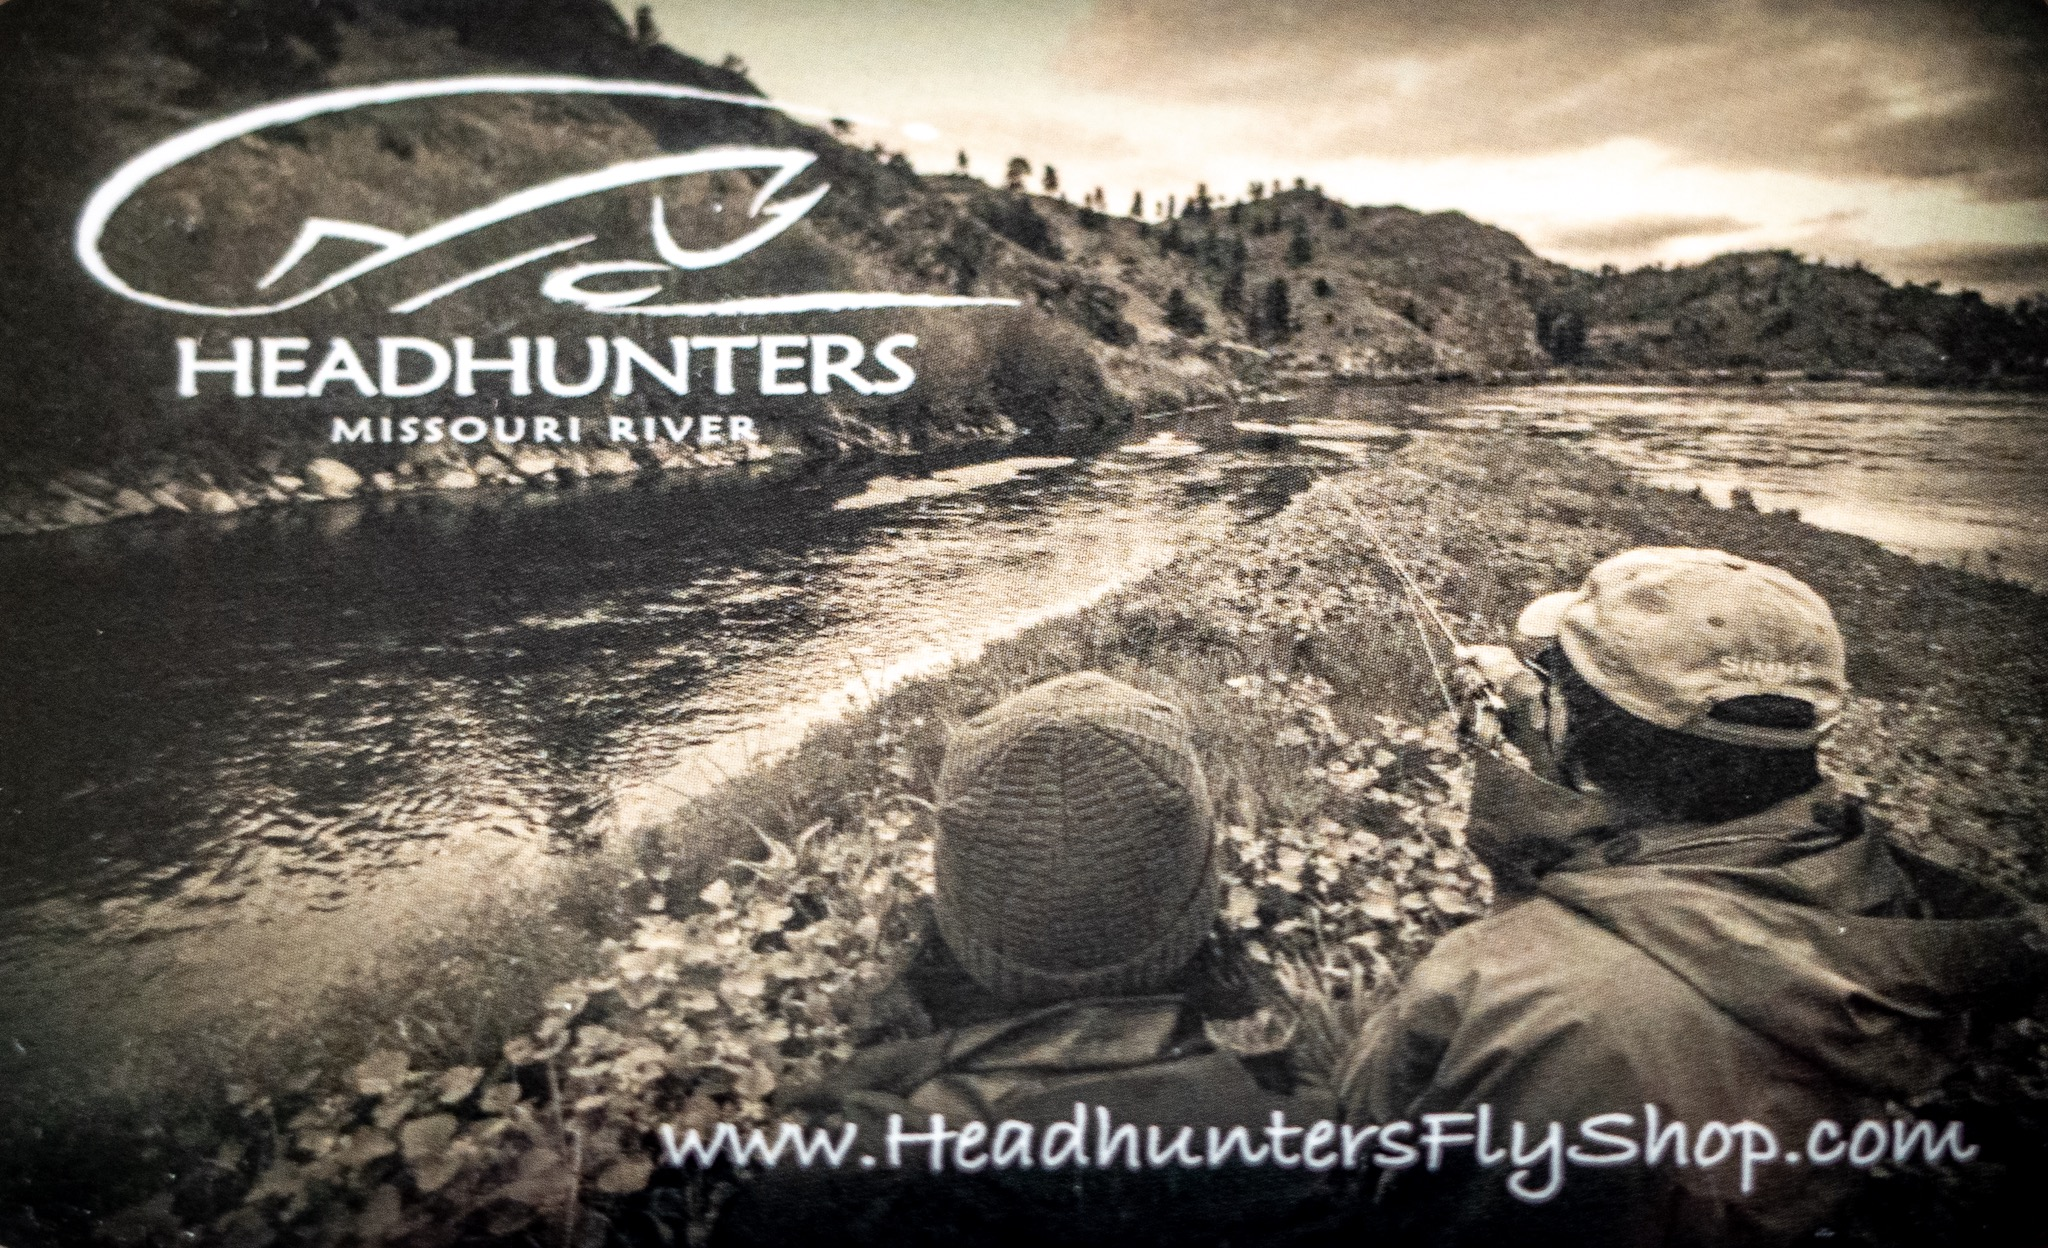 A Headhunters Fly Shop Gift Card solves many problems